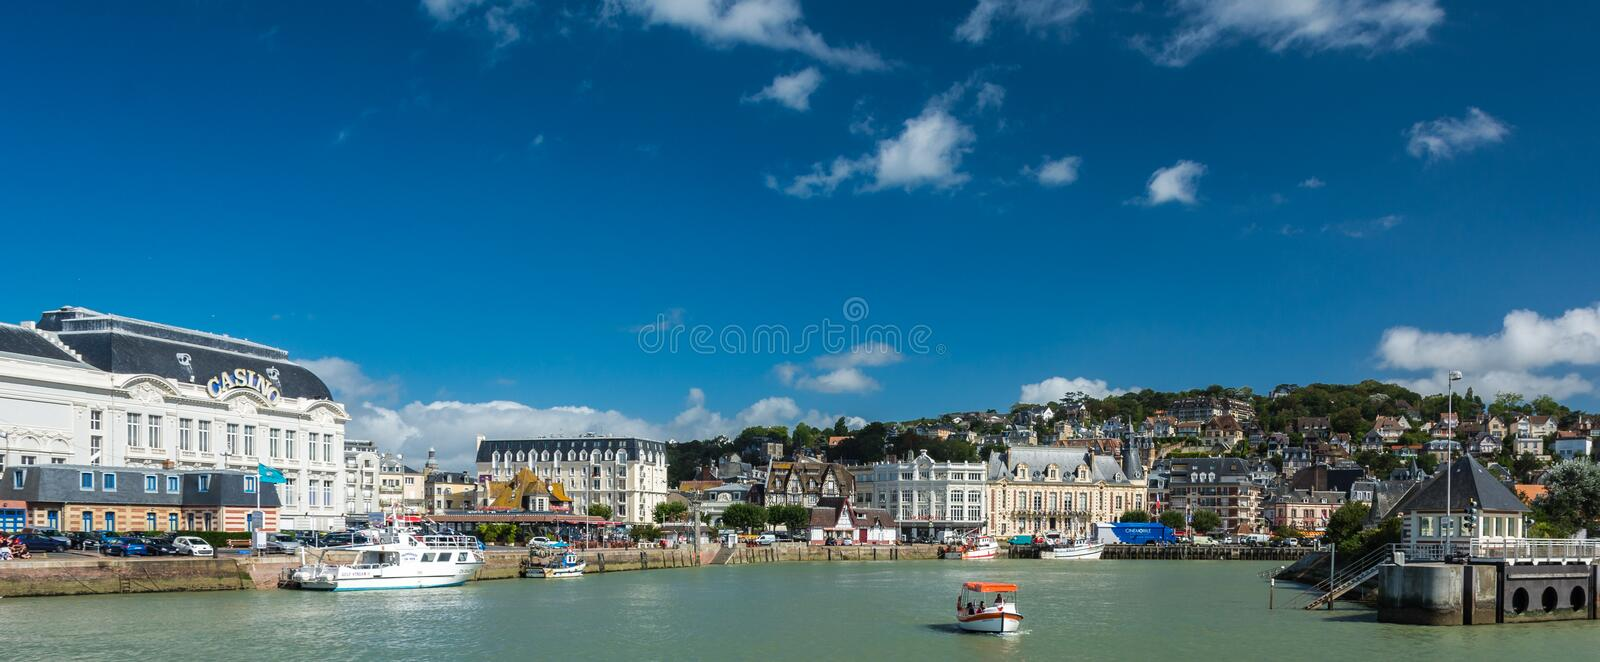 Deauville harbour. Deauville, France - September 8, 2016: With its harbour, film festival, marinas, Grand Casino and sumptuous hotels, Deauville is regarded as stock photo